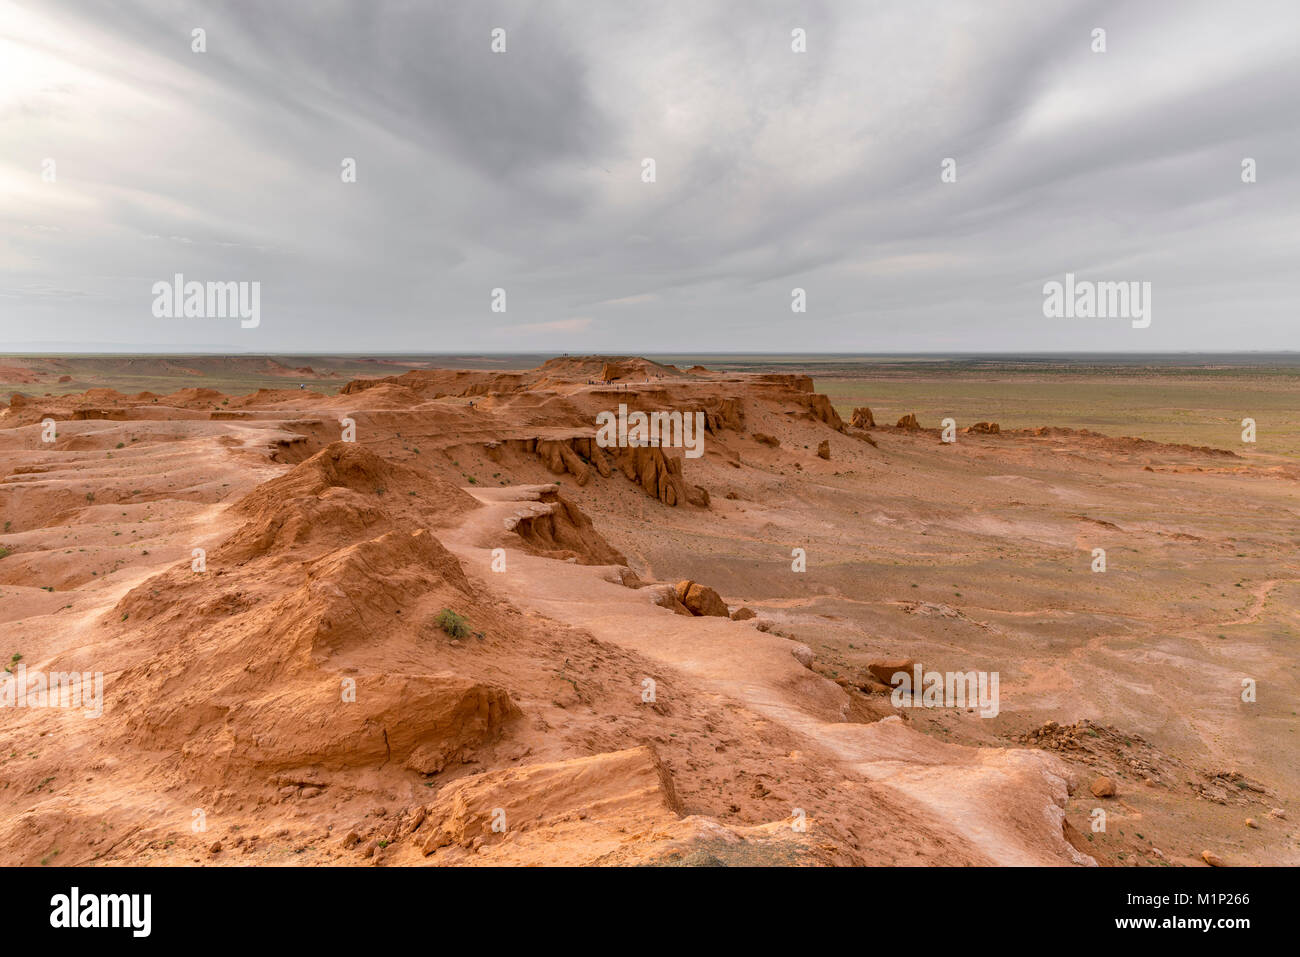 Flaming cliffs, Bajanzag, South Gobi province, Mongolia, Central Asia, Asia Stock Photo